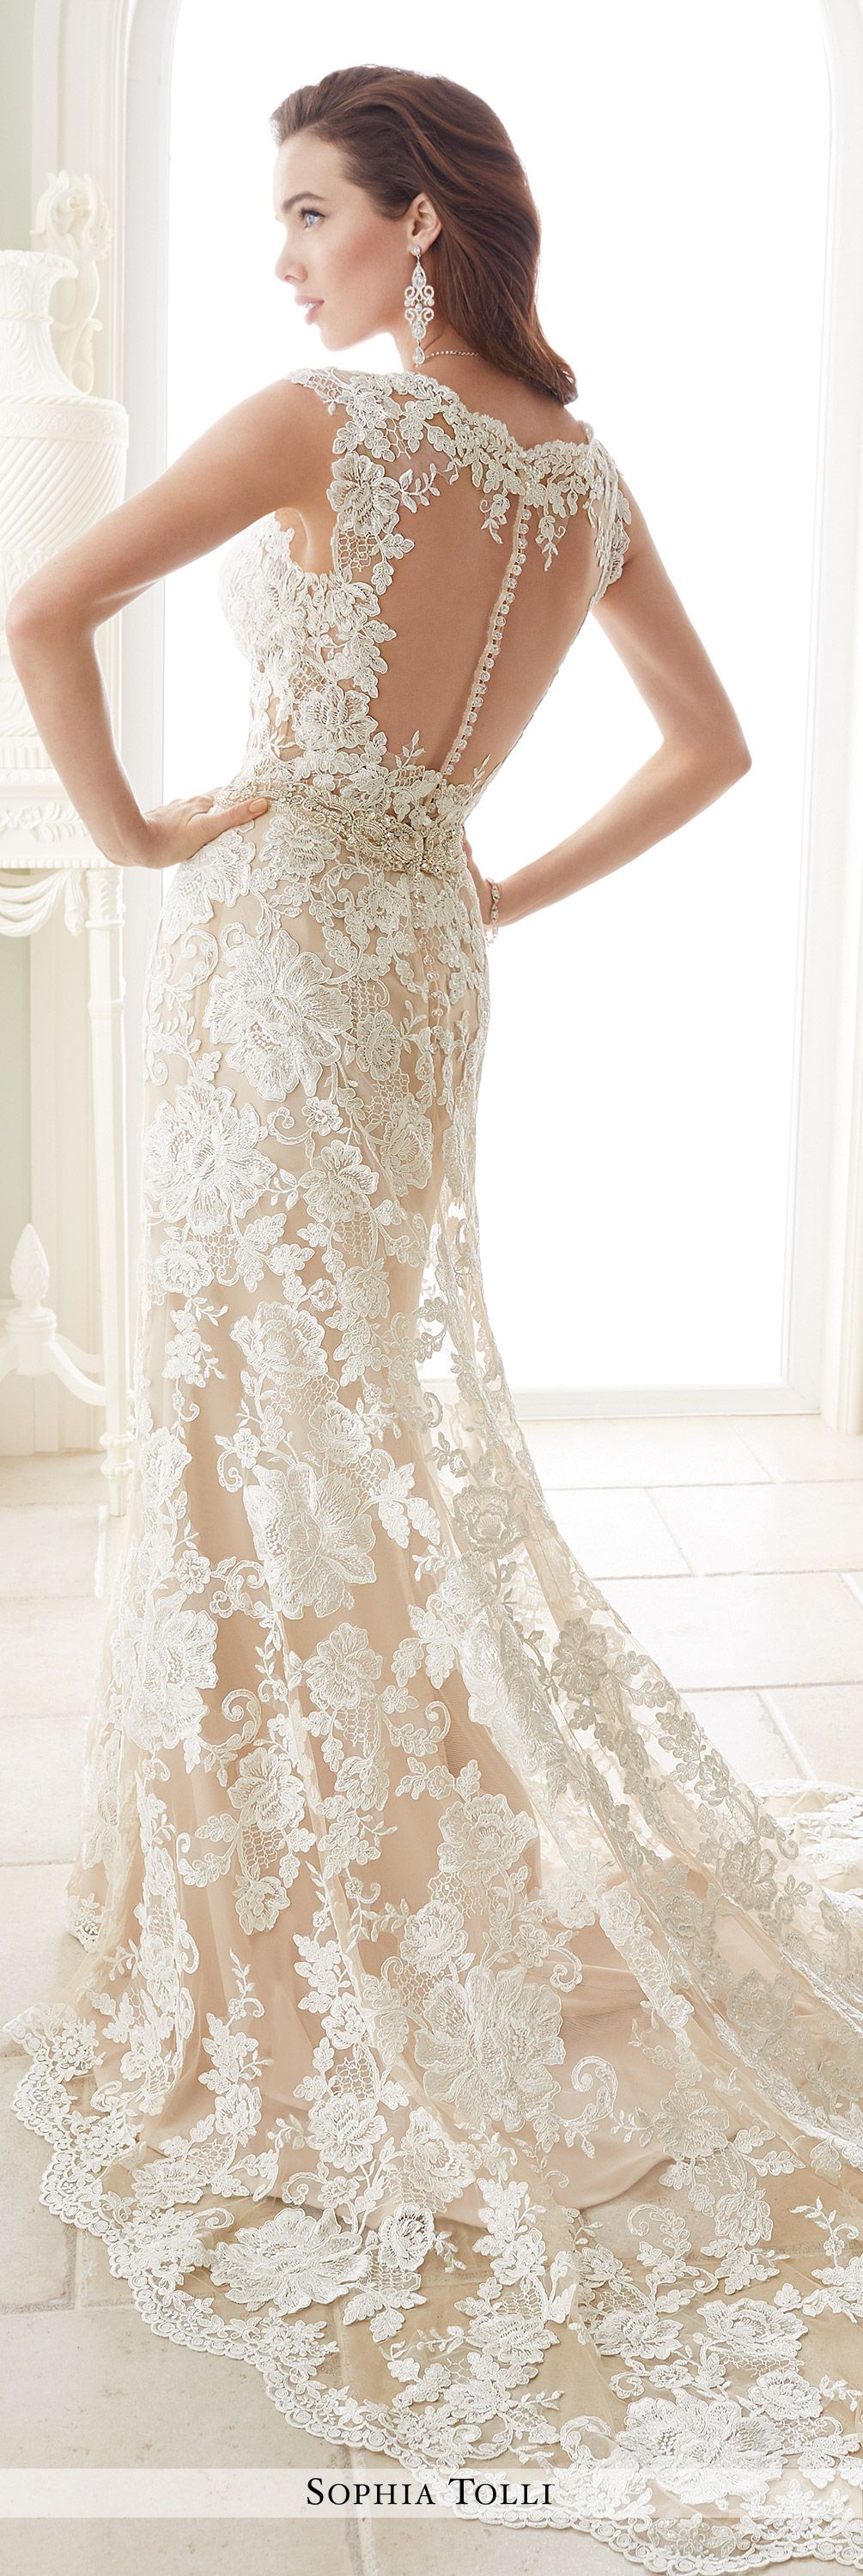 Scalloped lace back wedding dress